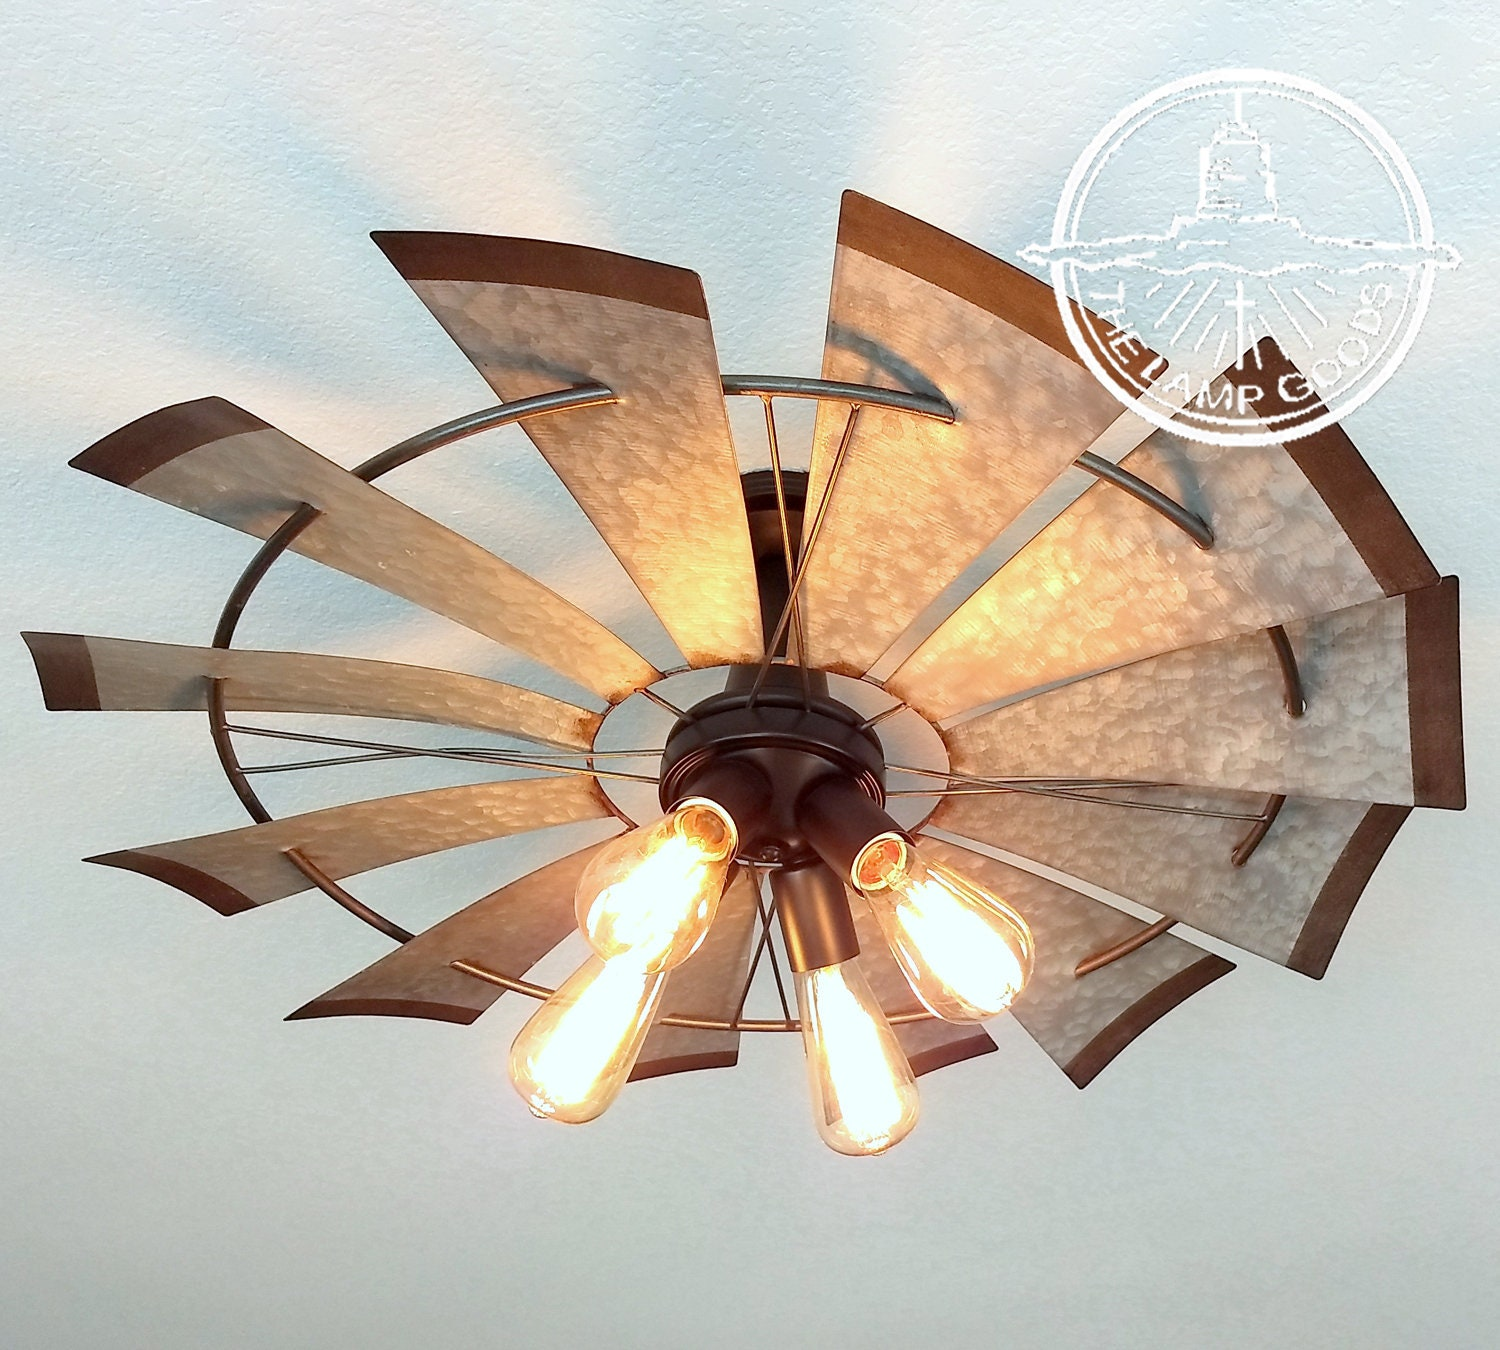 Windmill farmhouse flush mount light fixture original exclusive by lampgoods ceiling kitchen island vintage industrial shown wedison bulbs